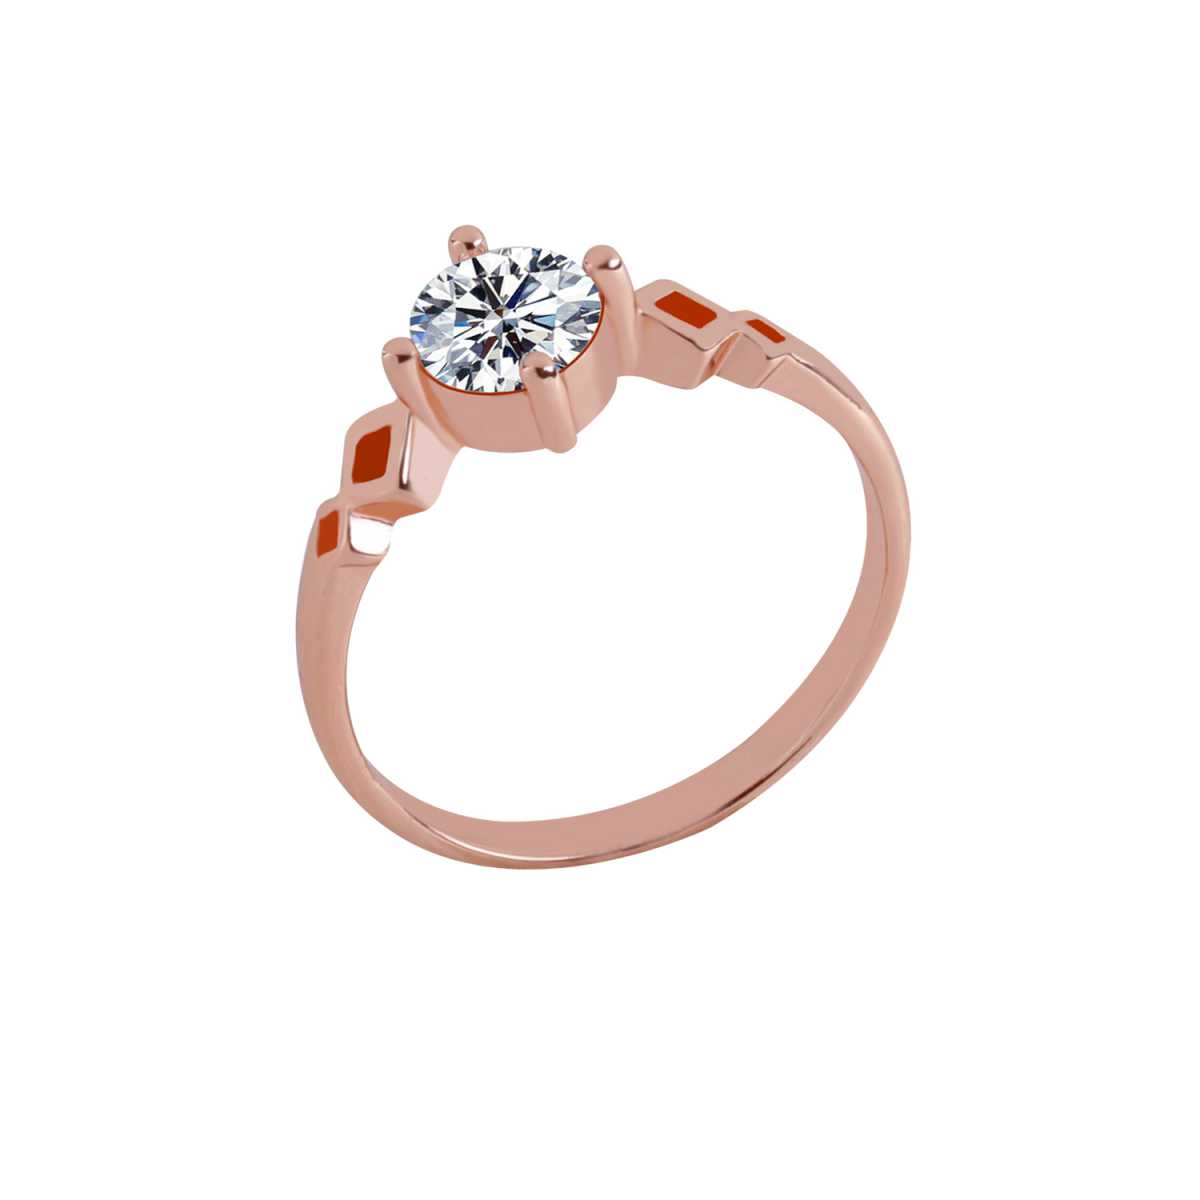 Silver Shine Rose Gold Plated Elegant Classic Crystal Cross Style Solitaire Ring for Girls and women,wedding ring,jewelry,diamonds,fashion jewelry,couple rings .